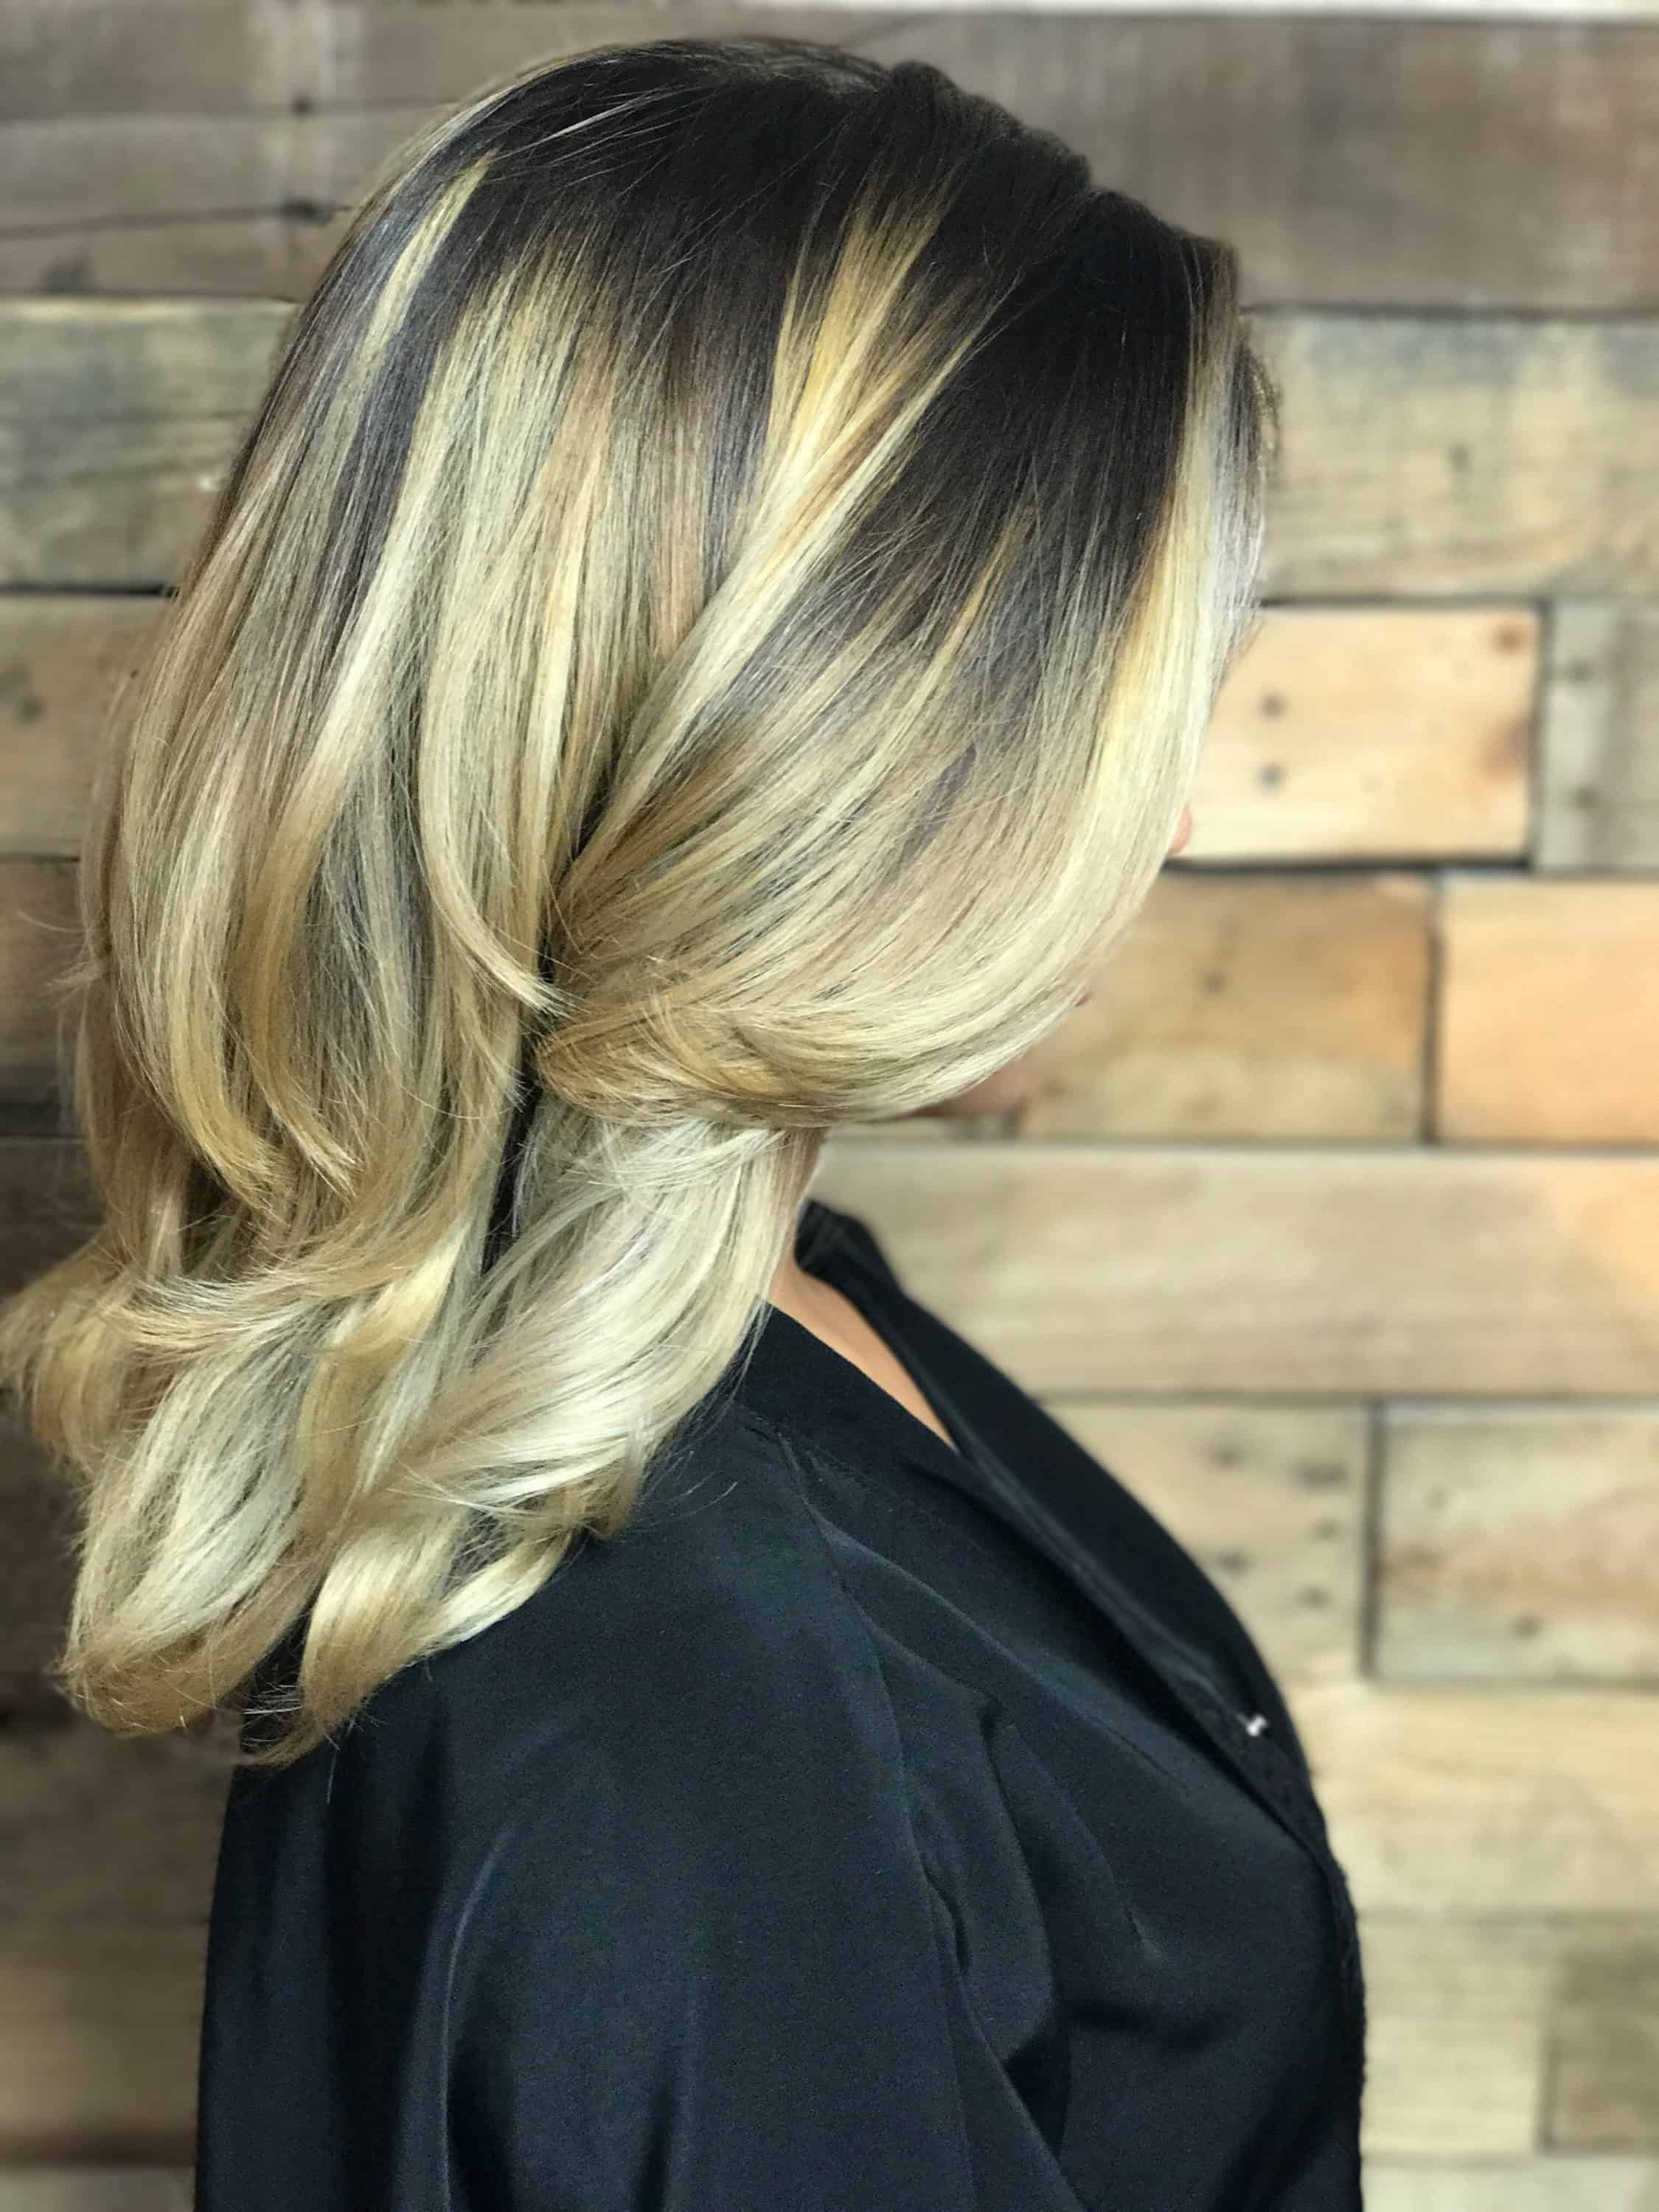 Best Salon Treatments for Repairing Damaged Hair - Our Top Five ...